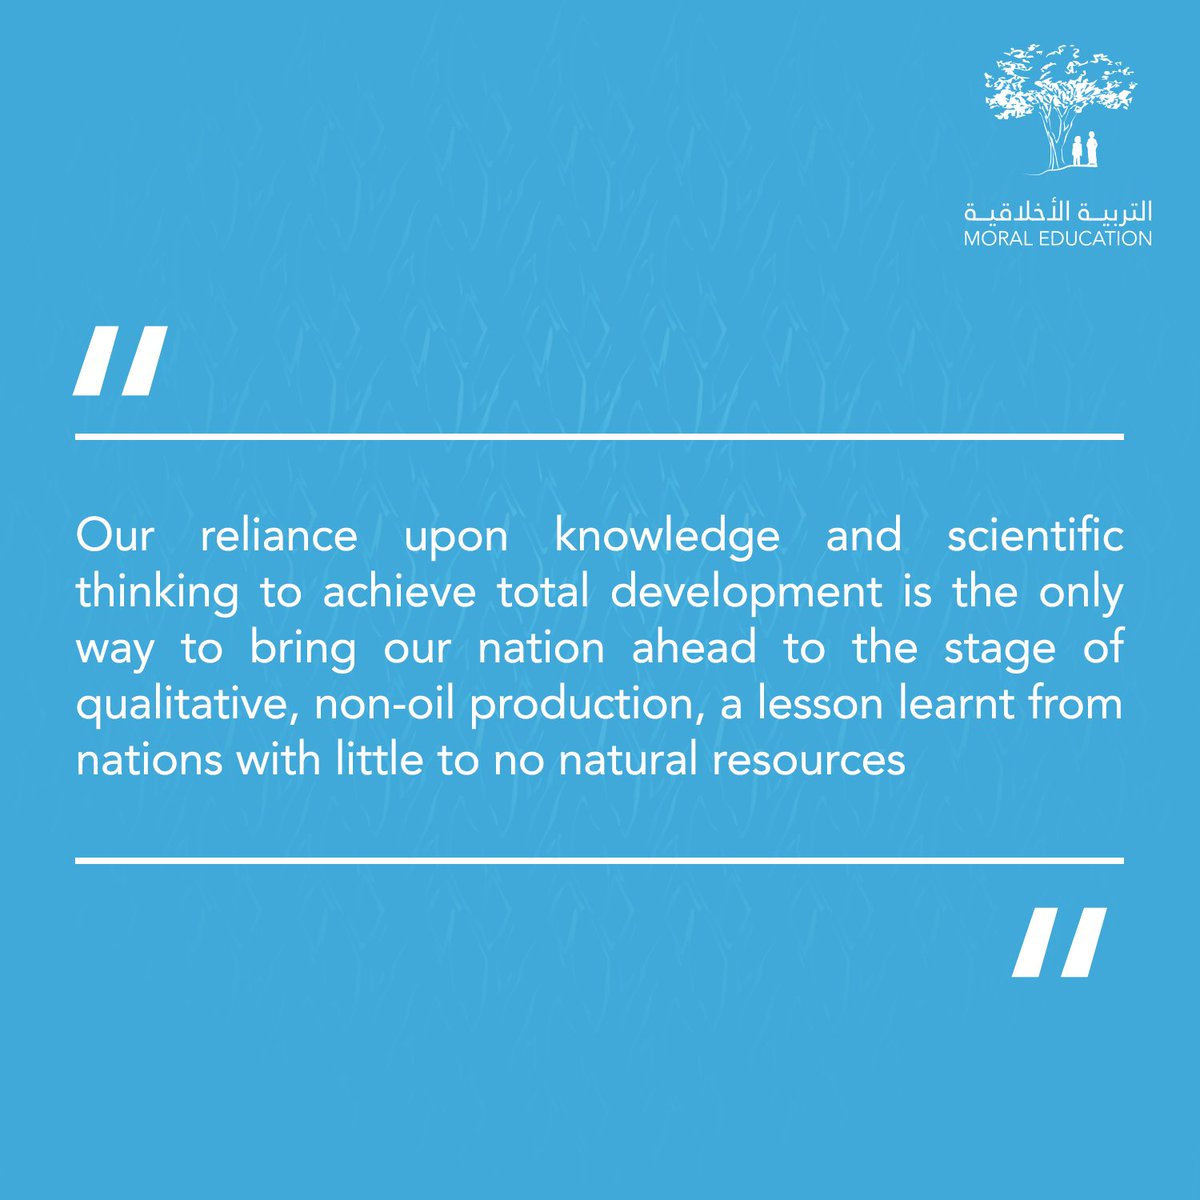 Uae Moral Education On Twitter A Quote From His Highness Sheikh